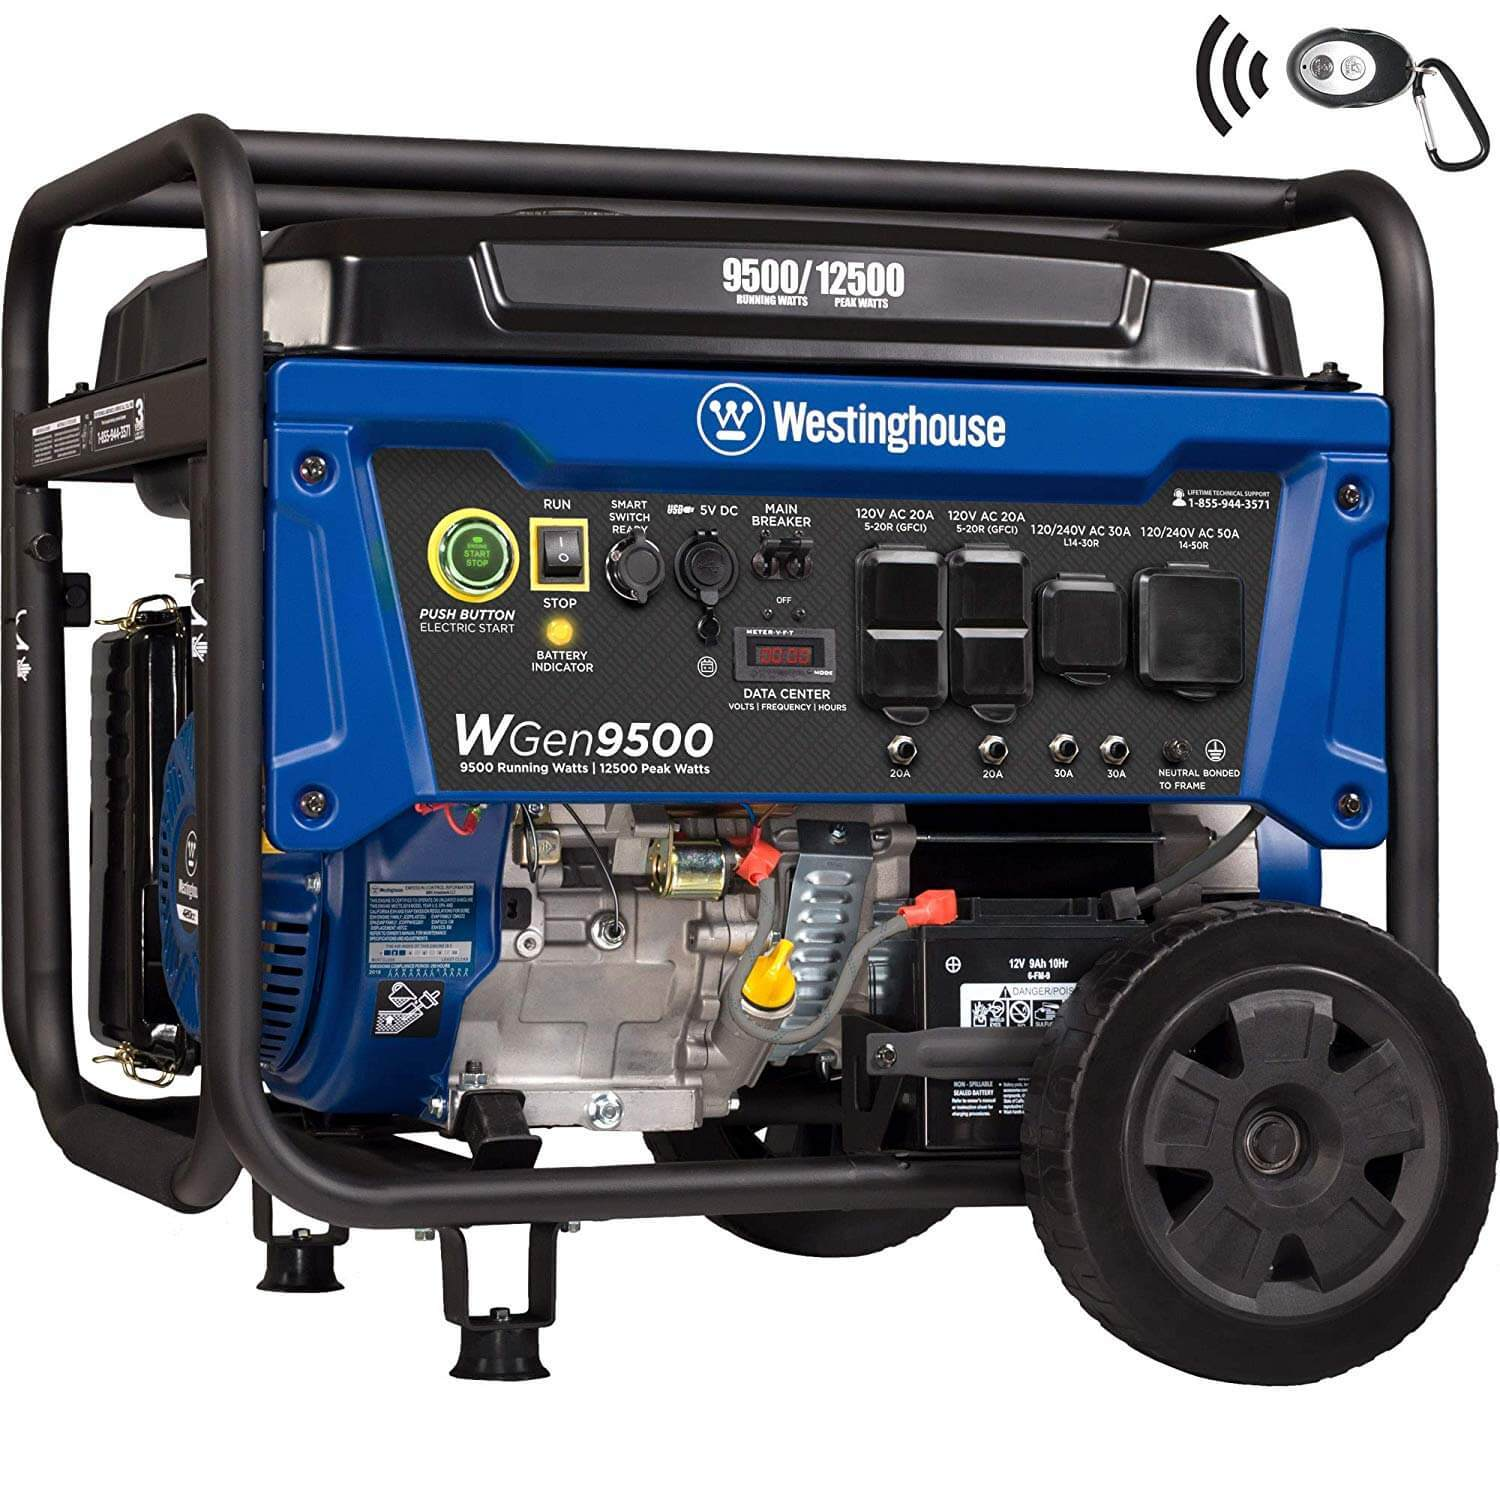 Westinghouse WGen9500 Heavy Duty Portable Generator Review 1